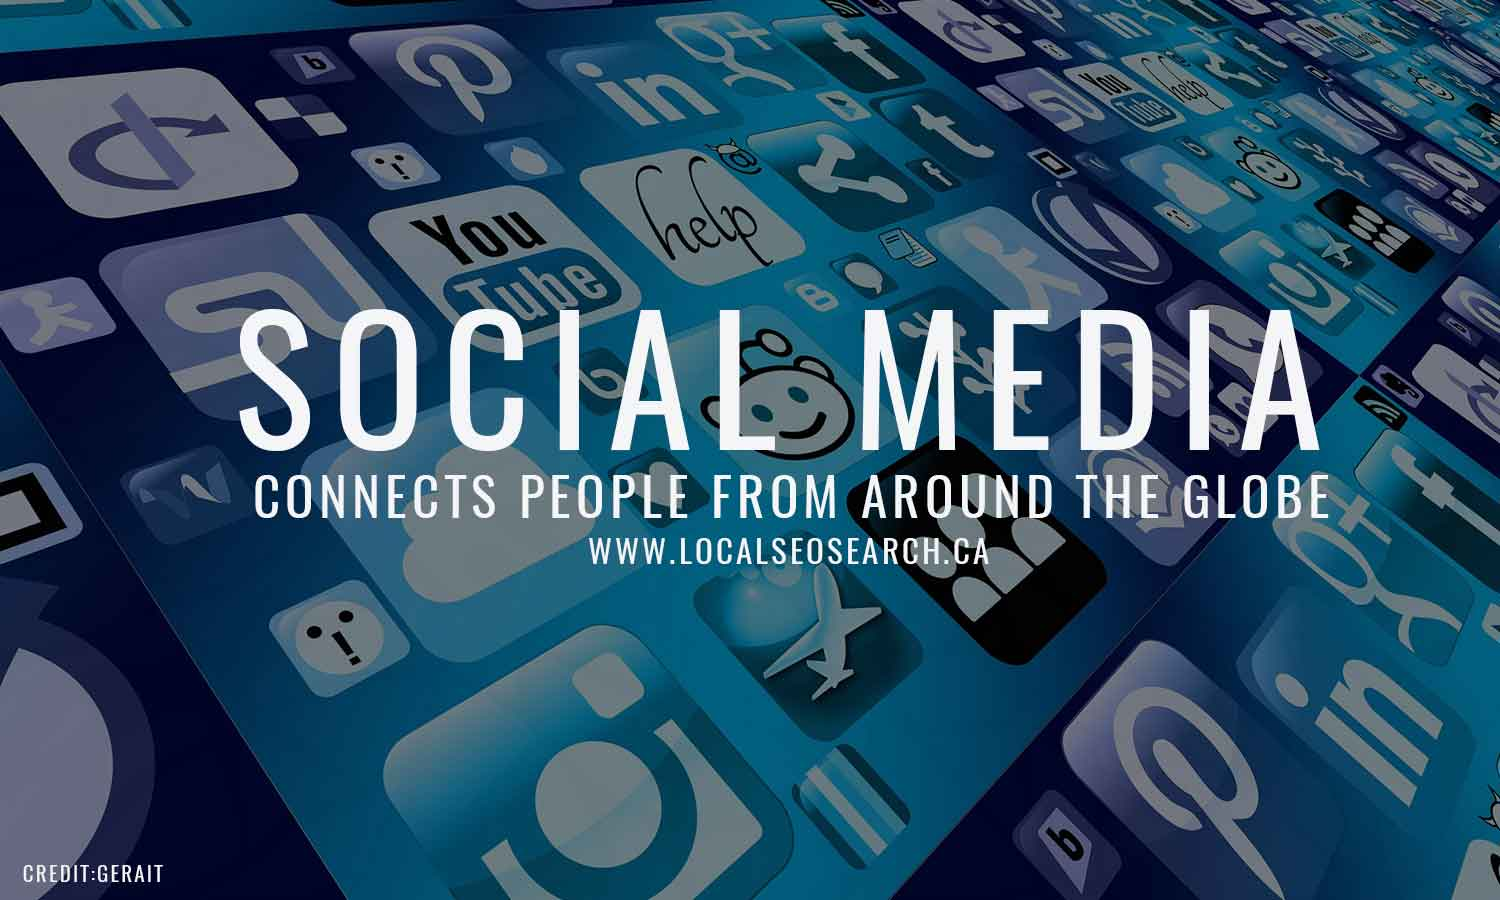 Social Media connects people from around the globe